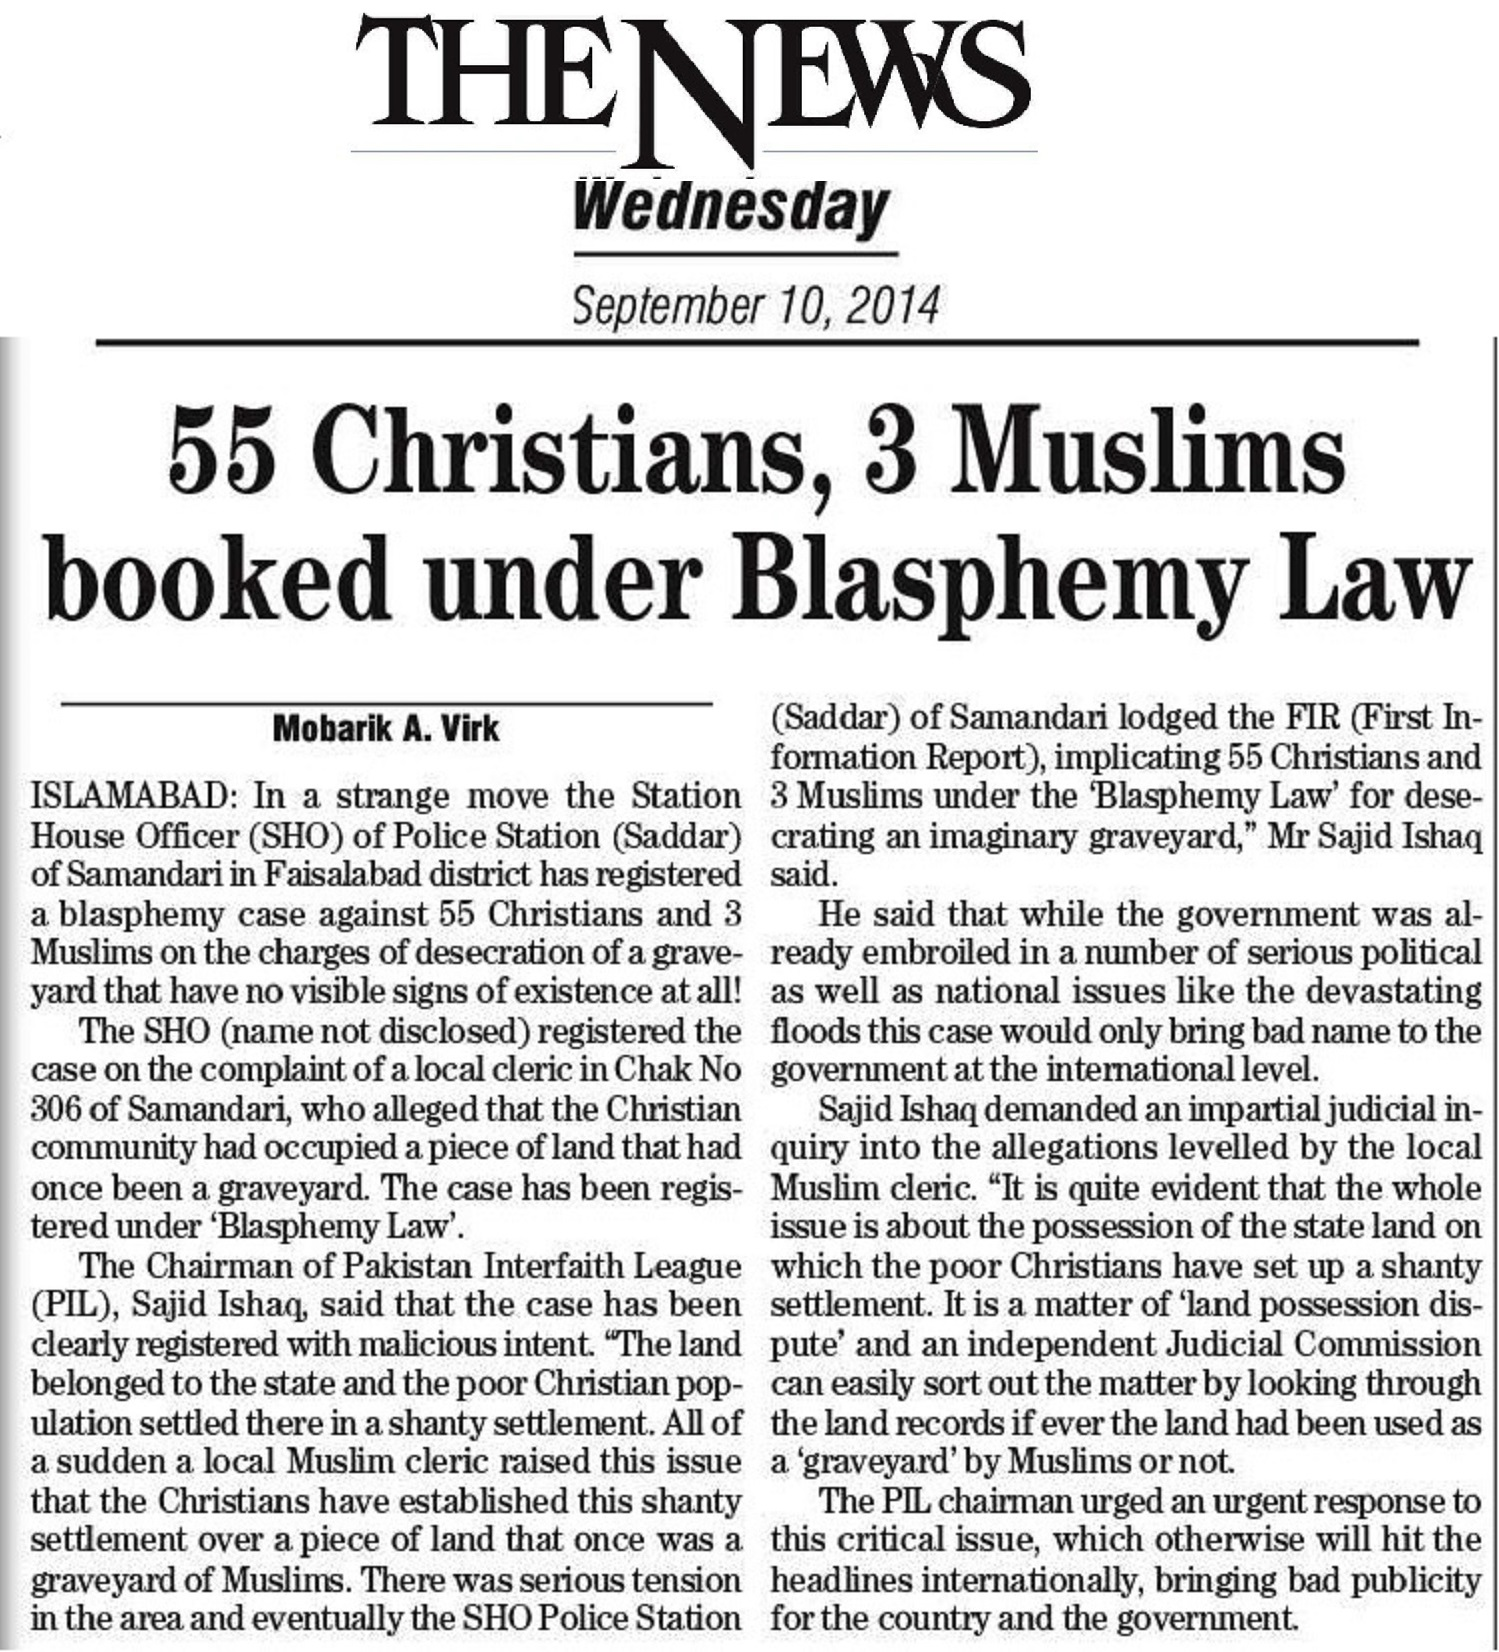 55 Christians, 3 Muslims booked under Blasphemy Law